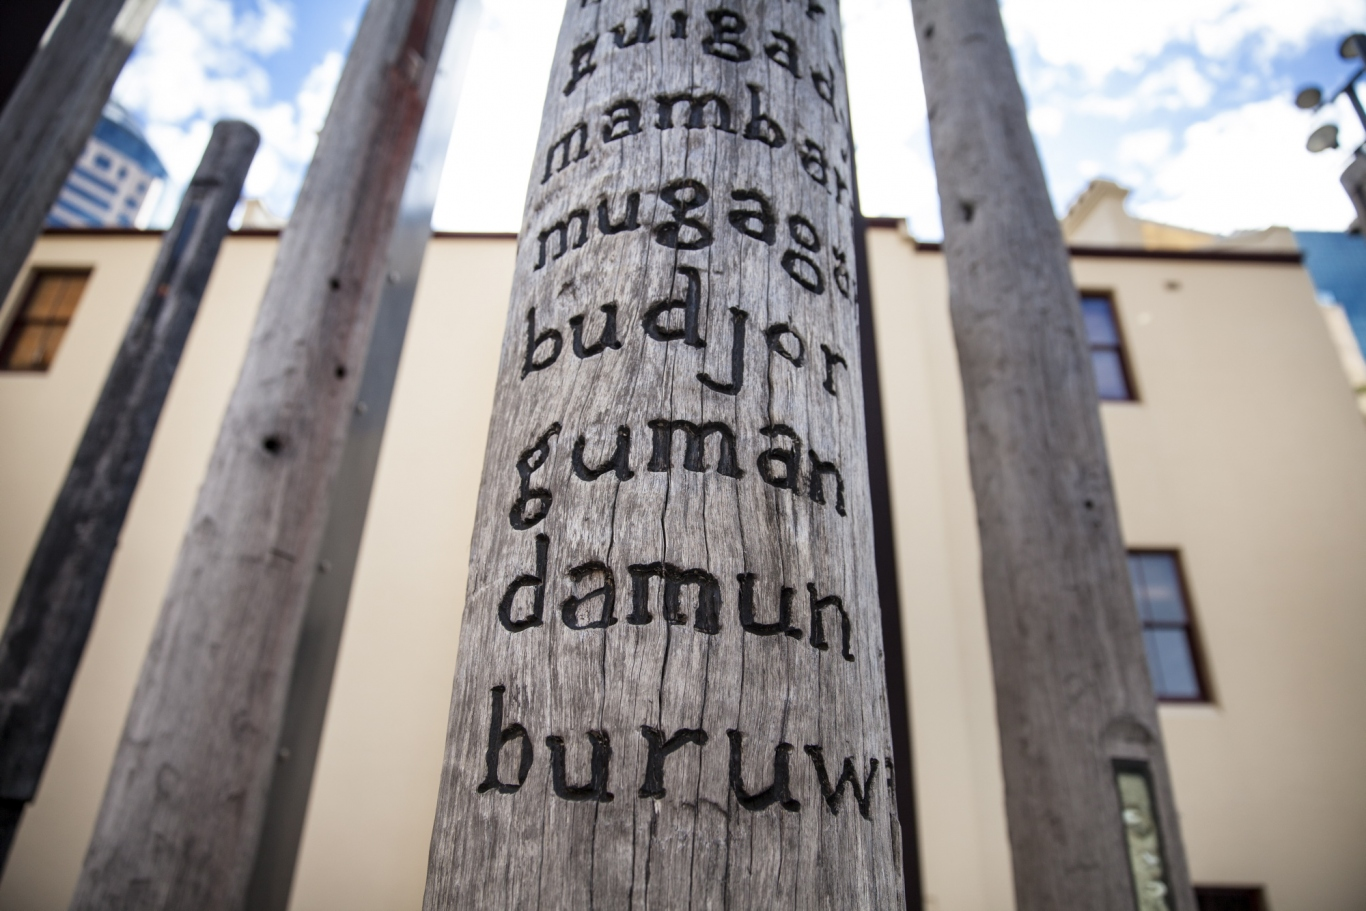 Wooden posts with carved words in indigenous languages.